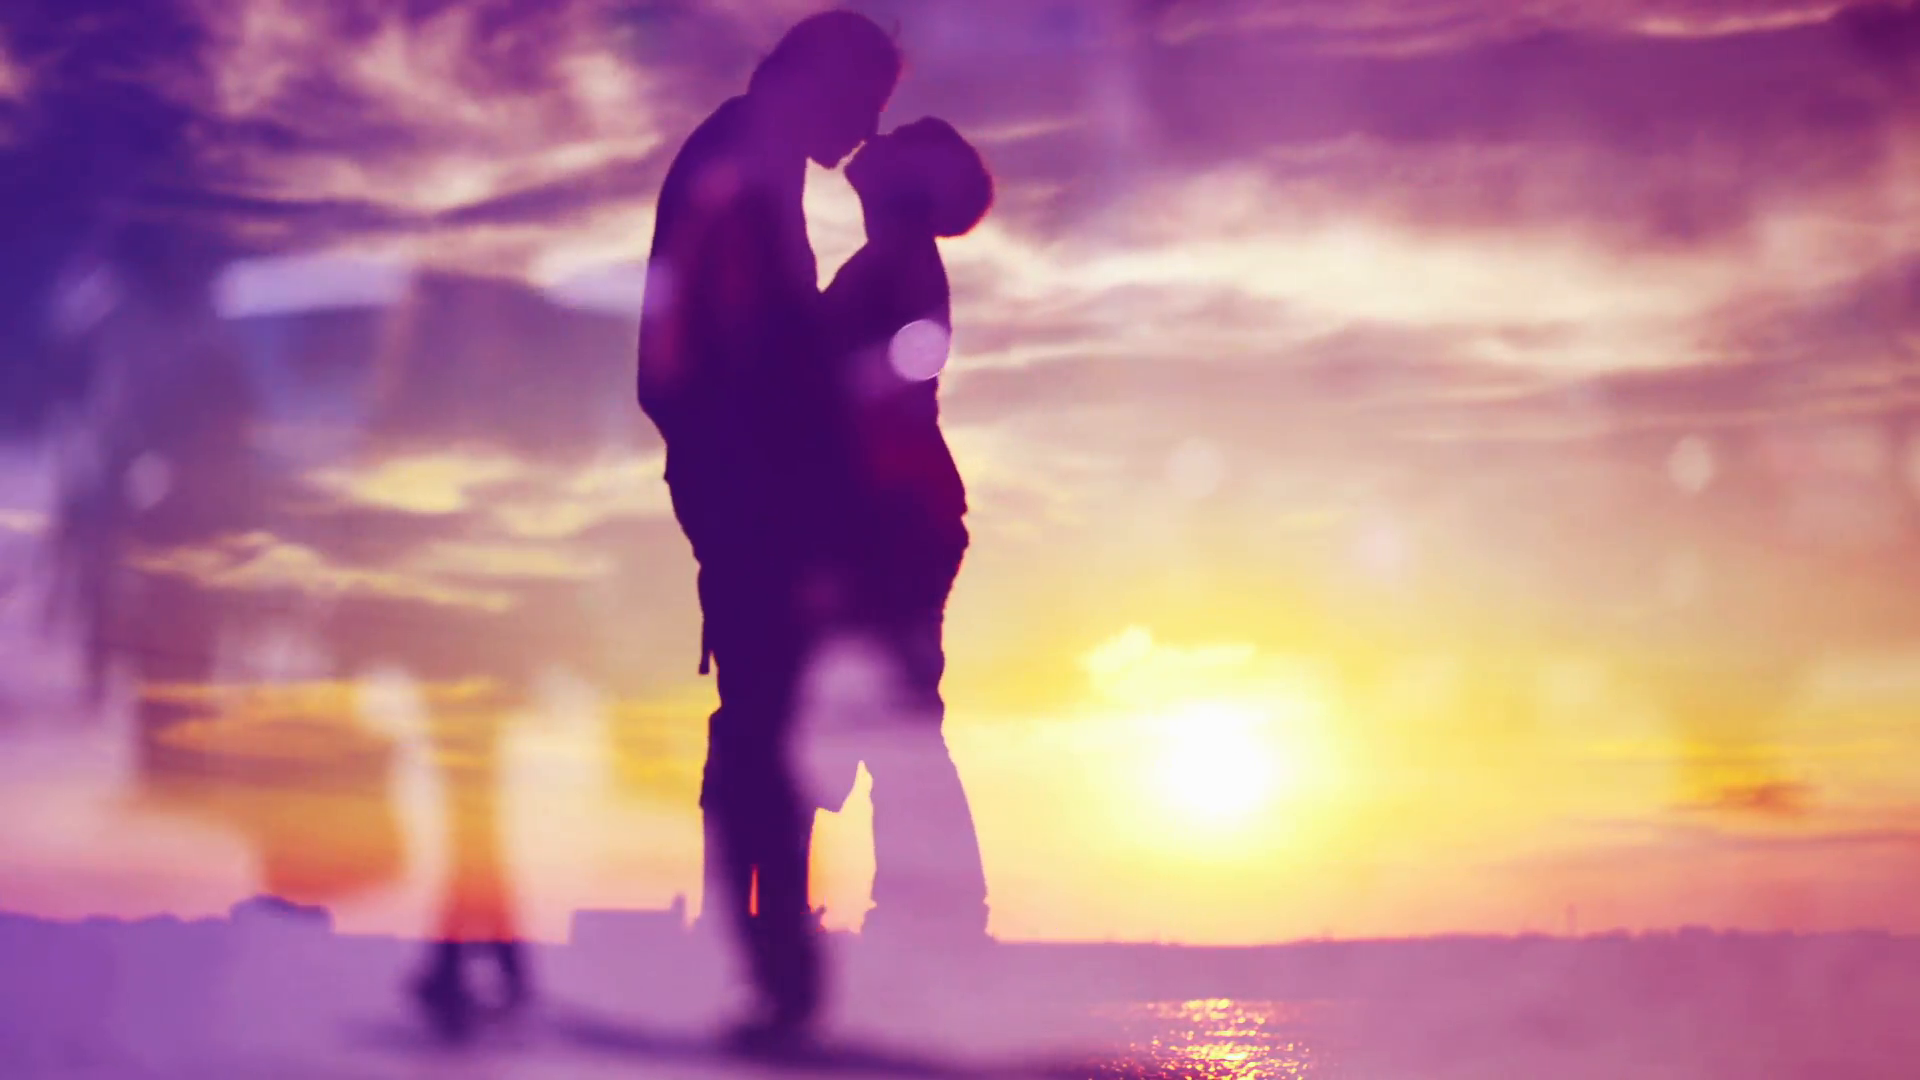 Silhouettes of Romantic Love Couple Meeting in Sunset, Kissing and ...